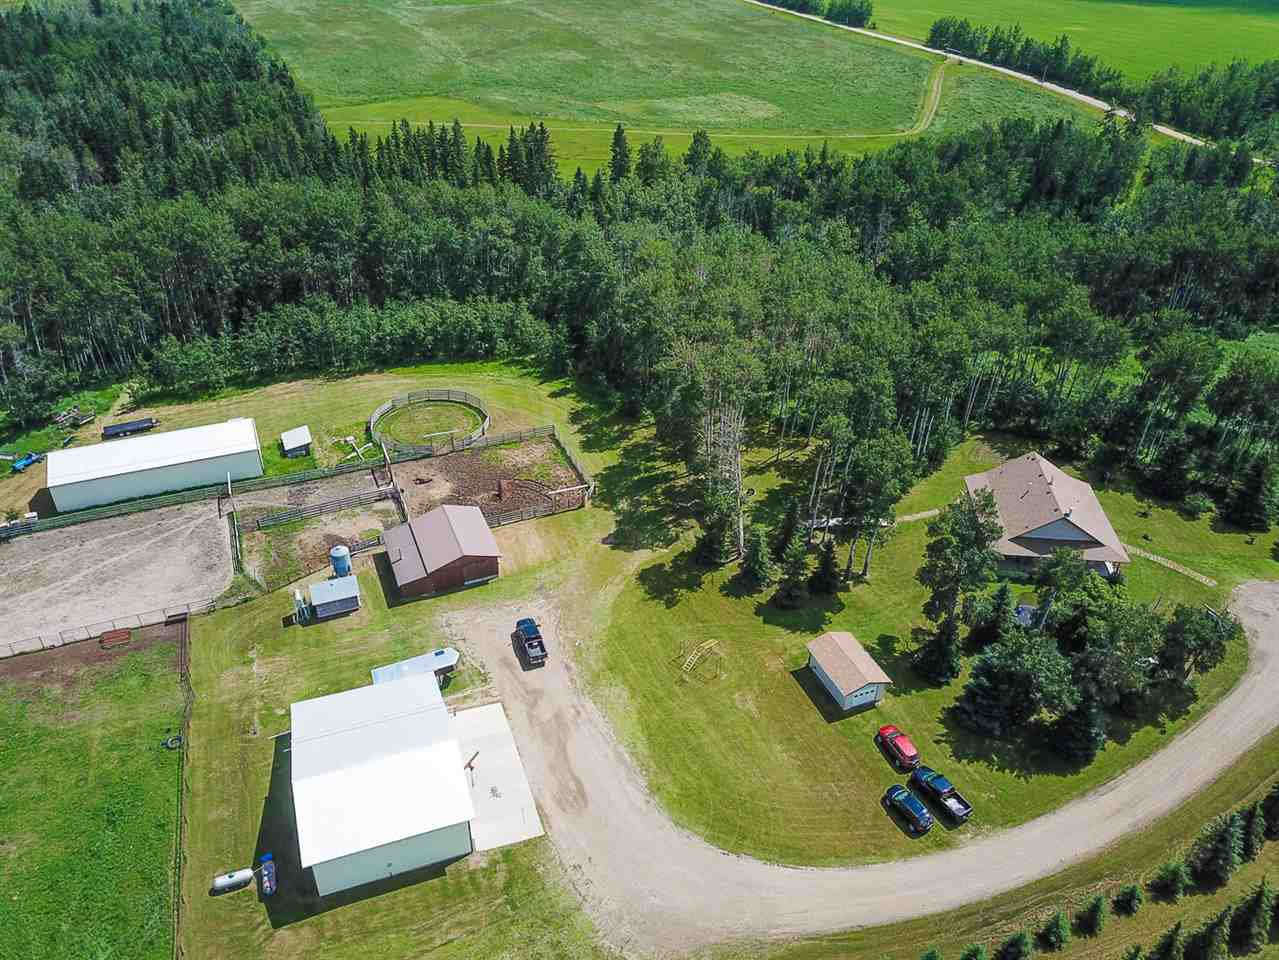 Main Photo: 2536 TWP 493: Rural Leduc County House for sale : MLS®# E4166332